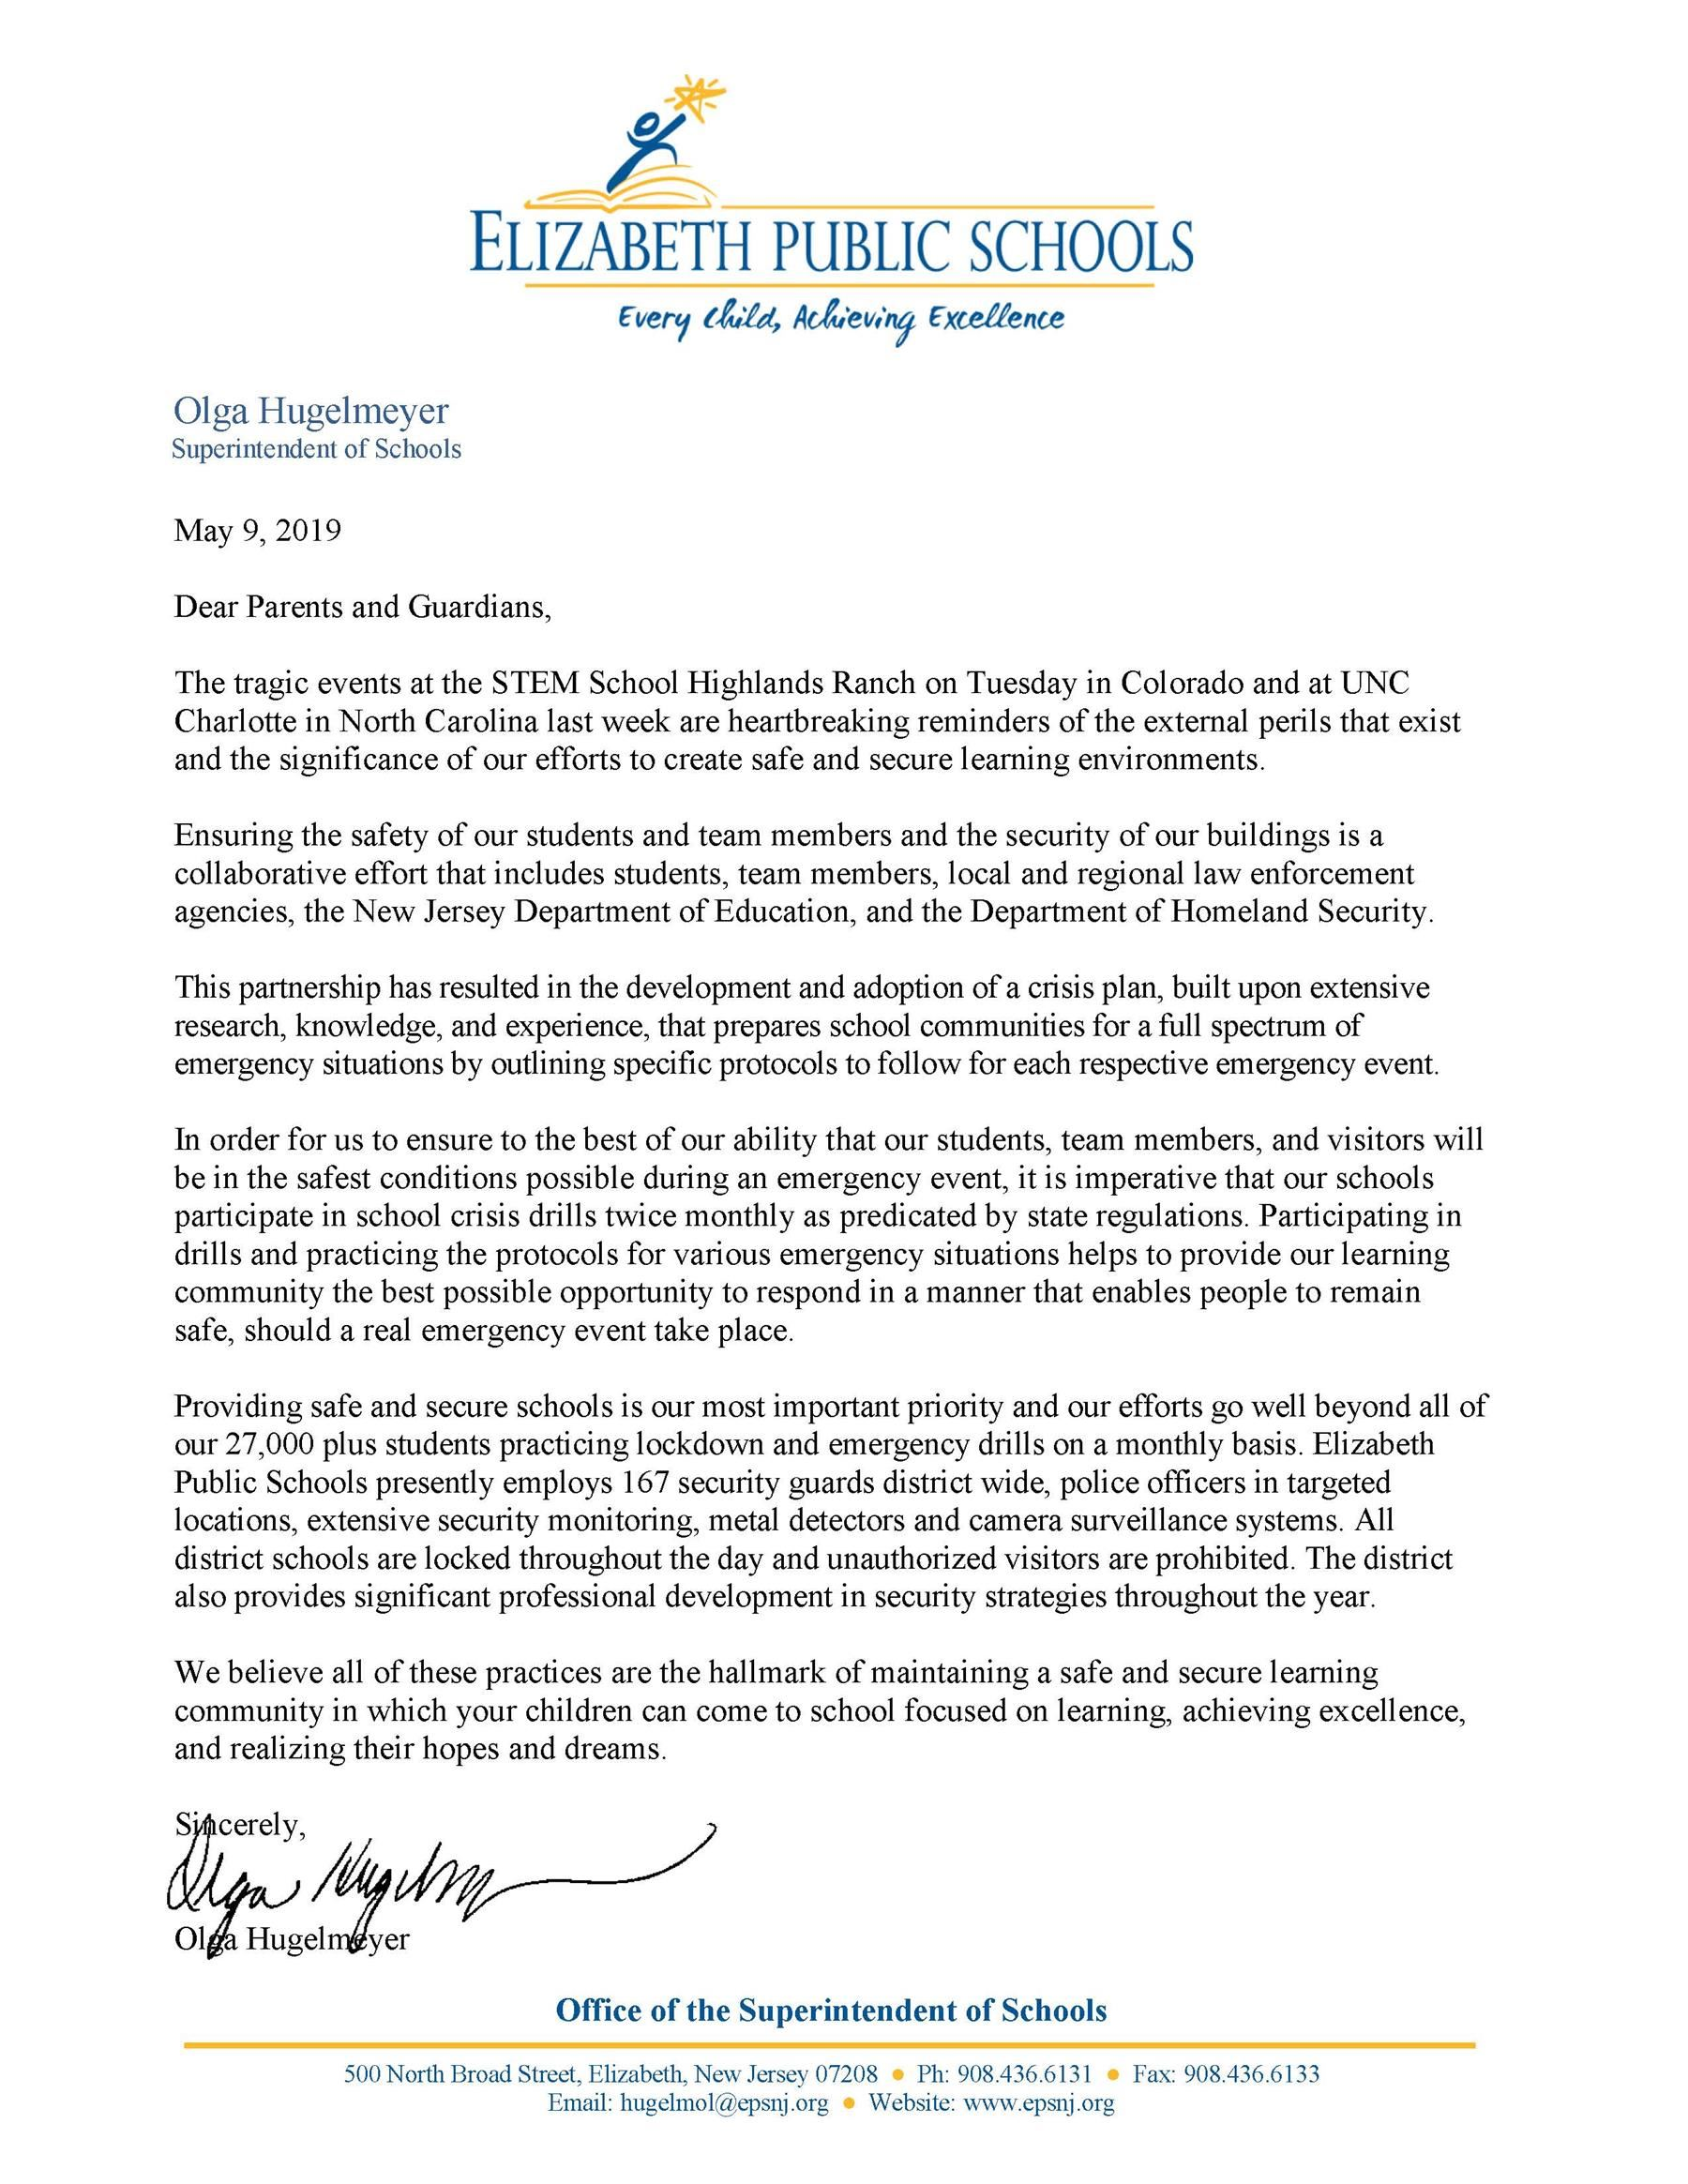 Letter to parents-guardians expressing the importance of school security drills- 5-9-19